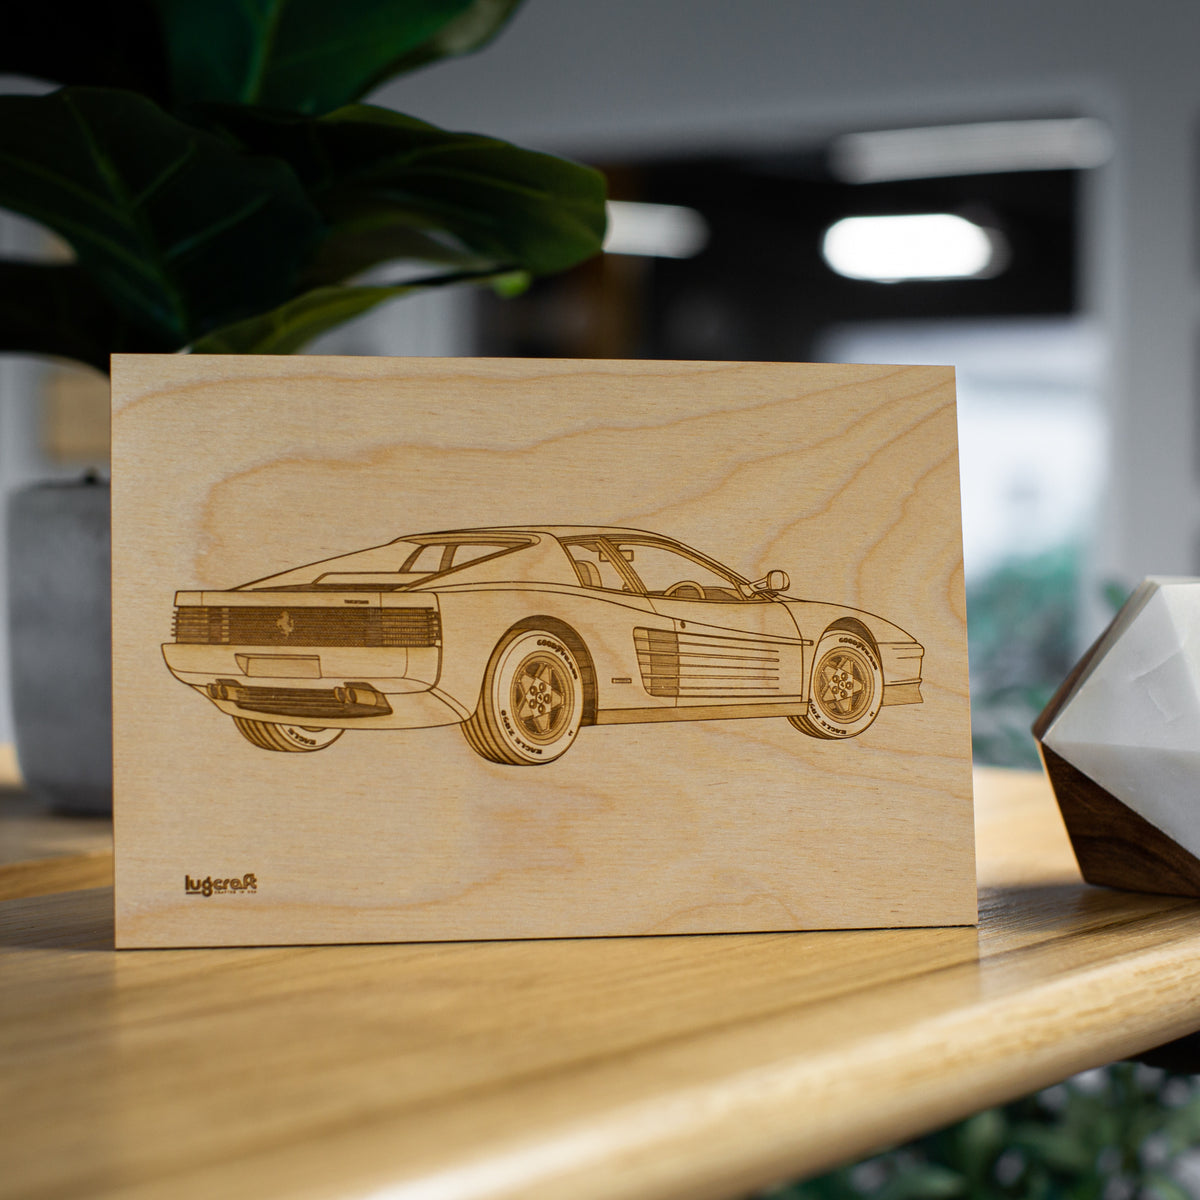 Ferrari Testarossa Collectible Engraving